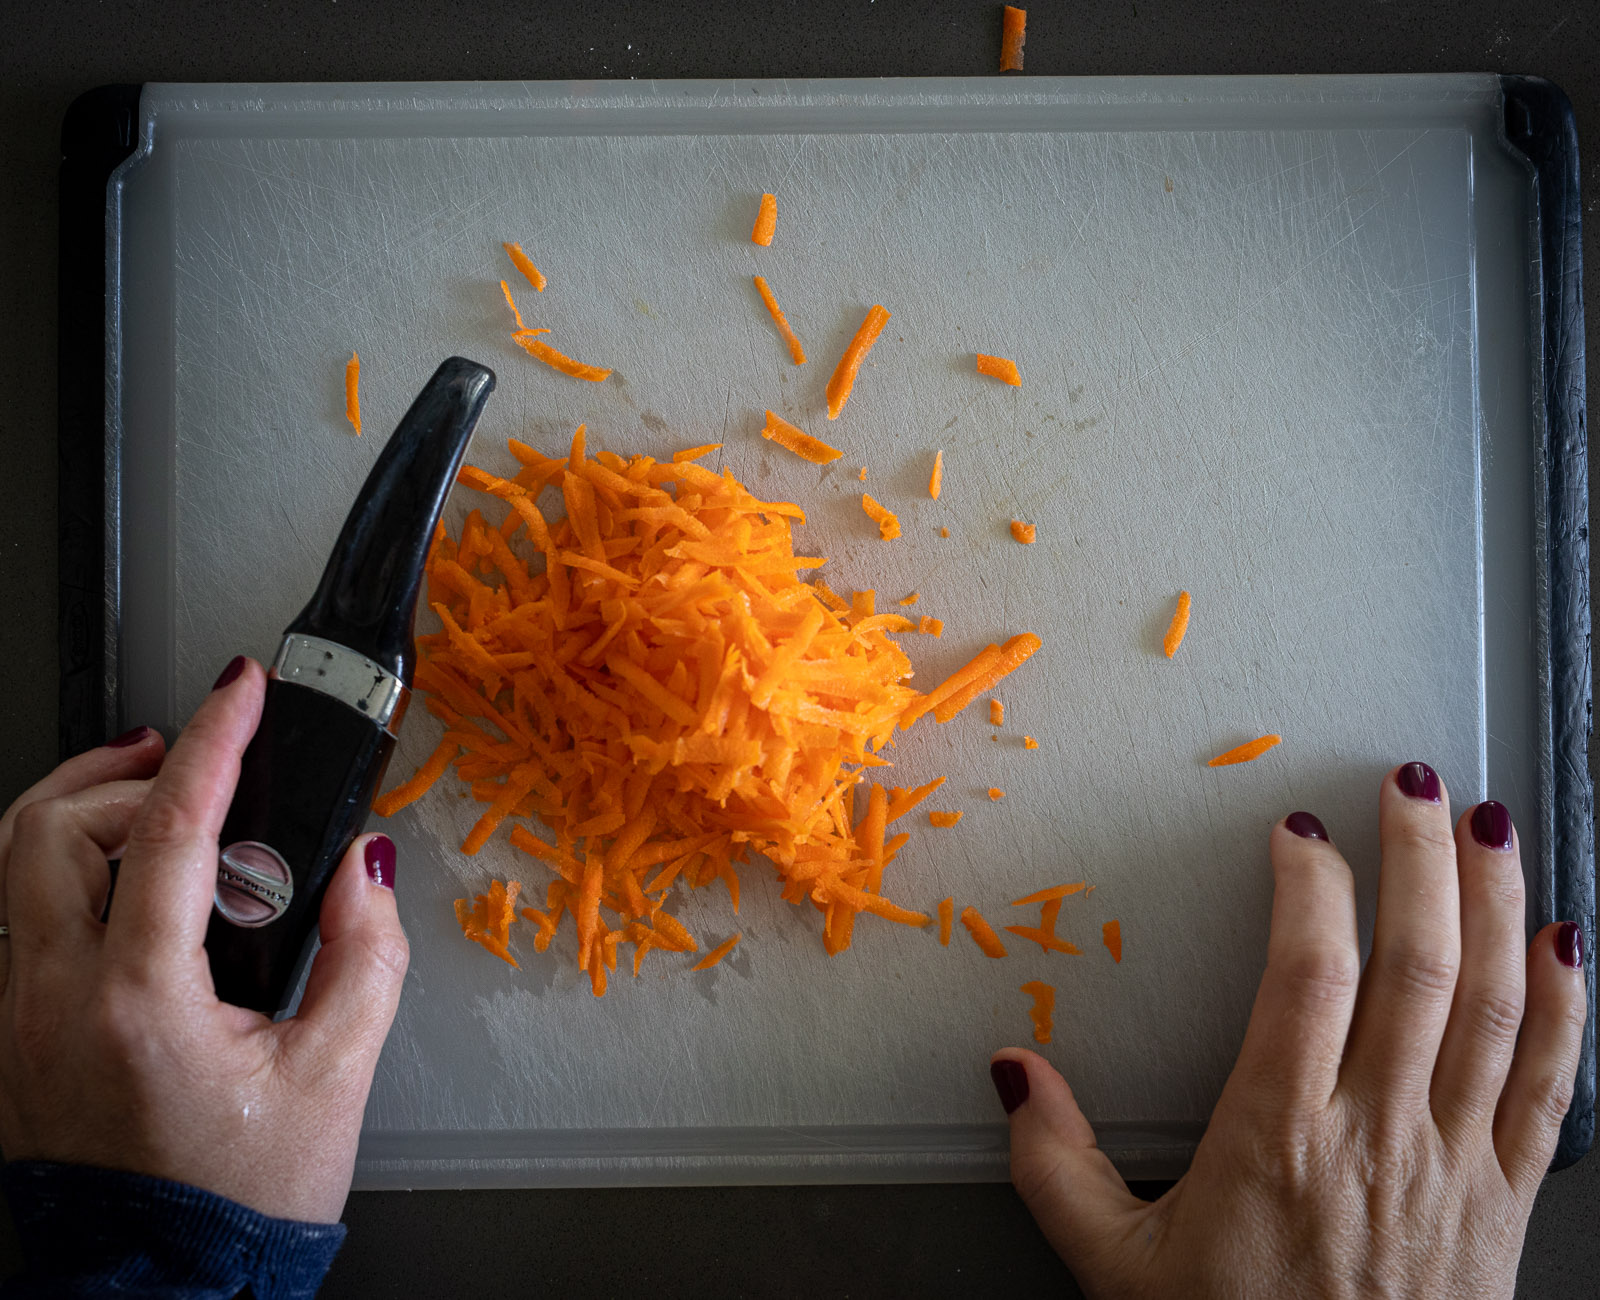 Grated carrots on a plastic cutting board.